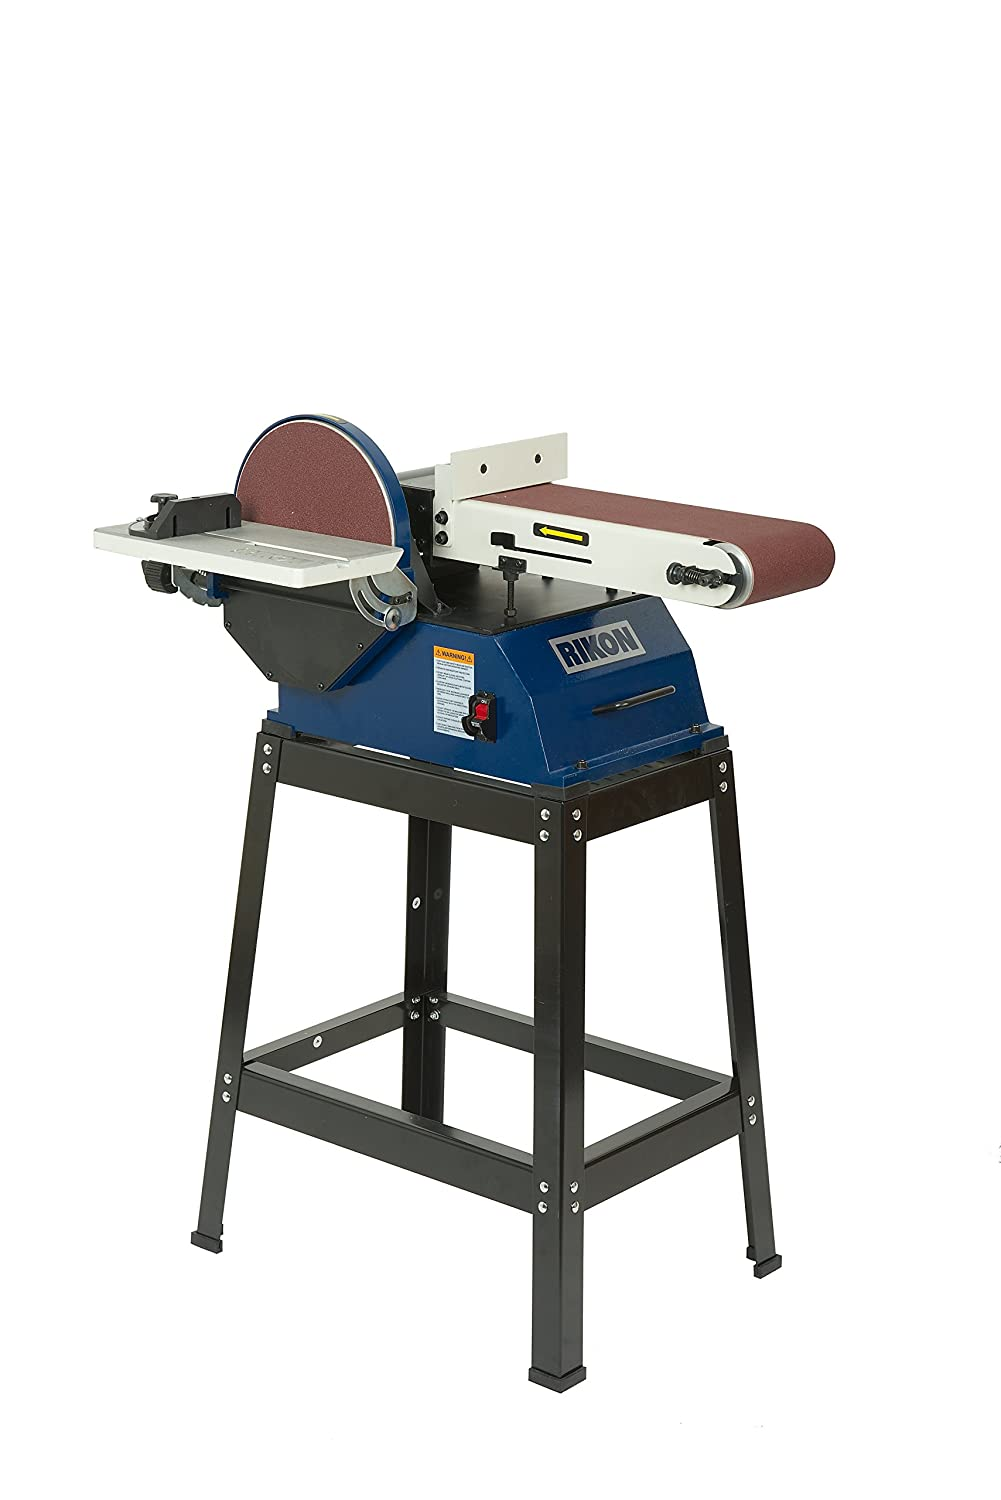 Rikon 50-122 Disc & Belt Sanders product image 1